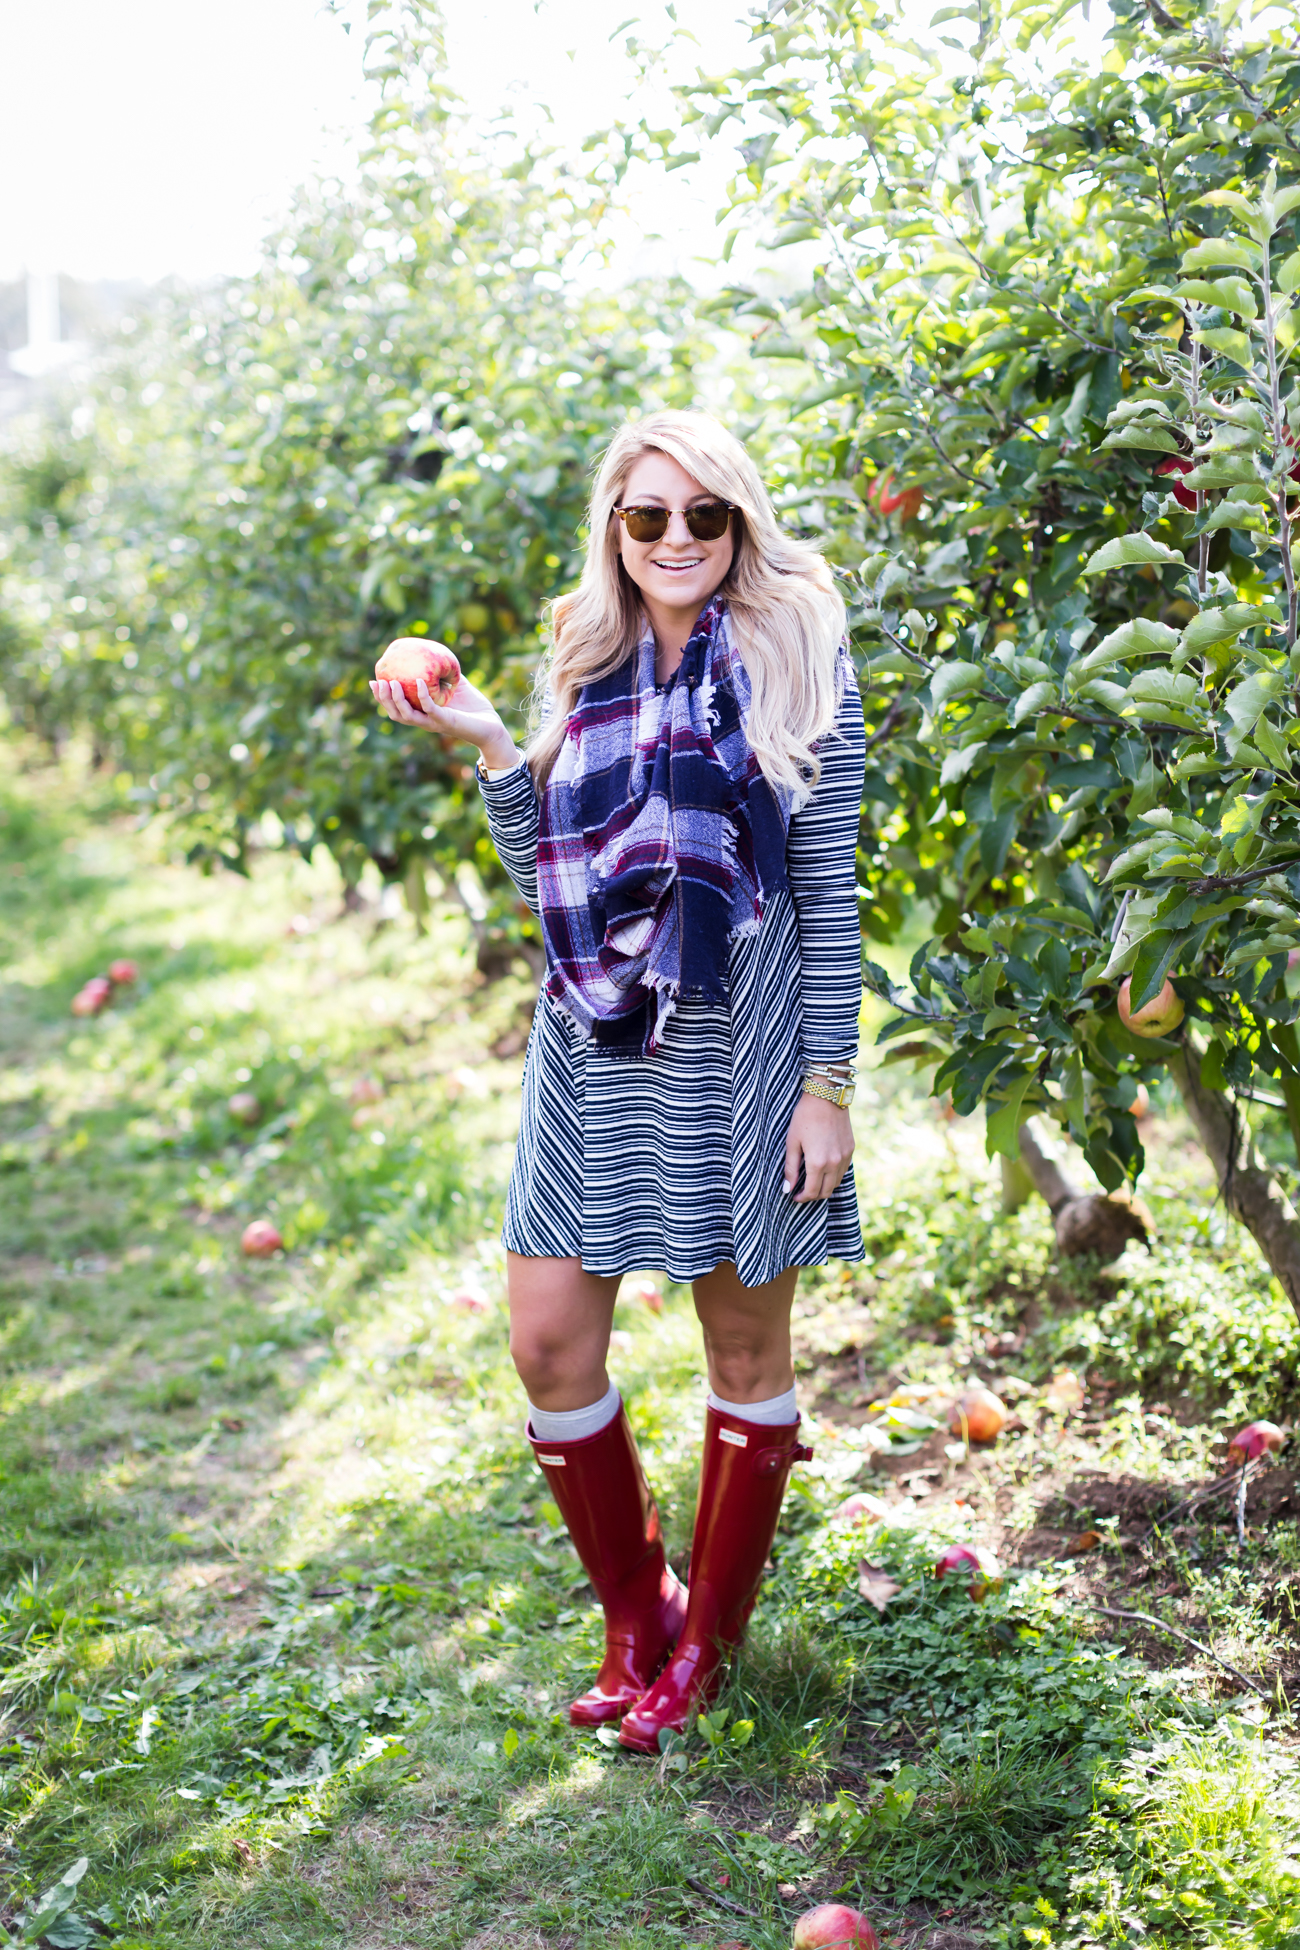 What to wear to go apple picking